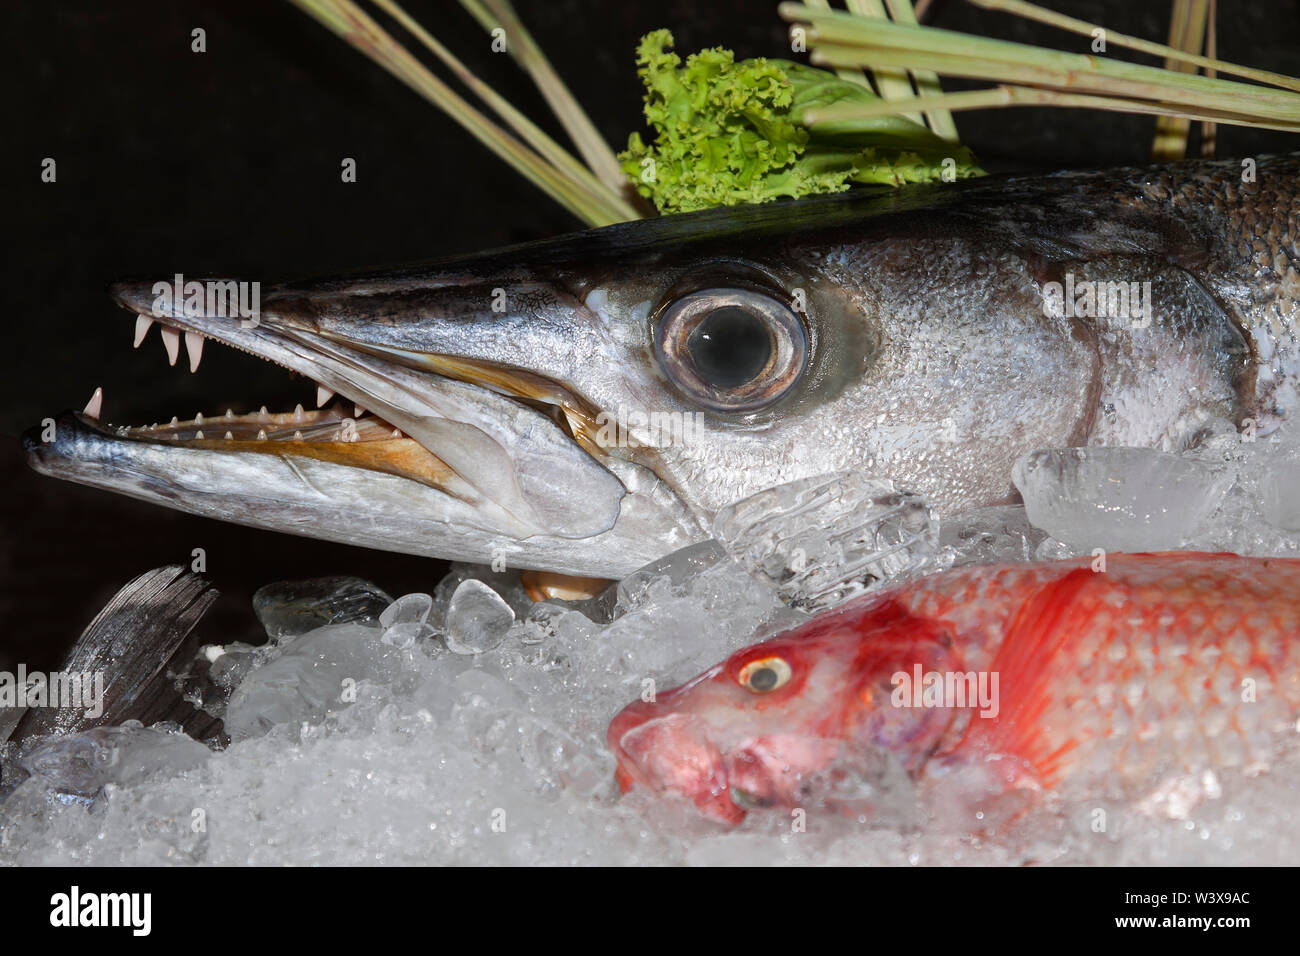 Barracuda, a large, predatory ray-finned fish - Stock Image